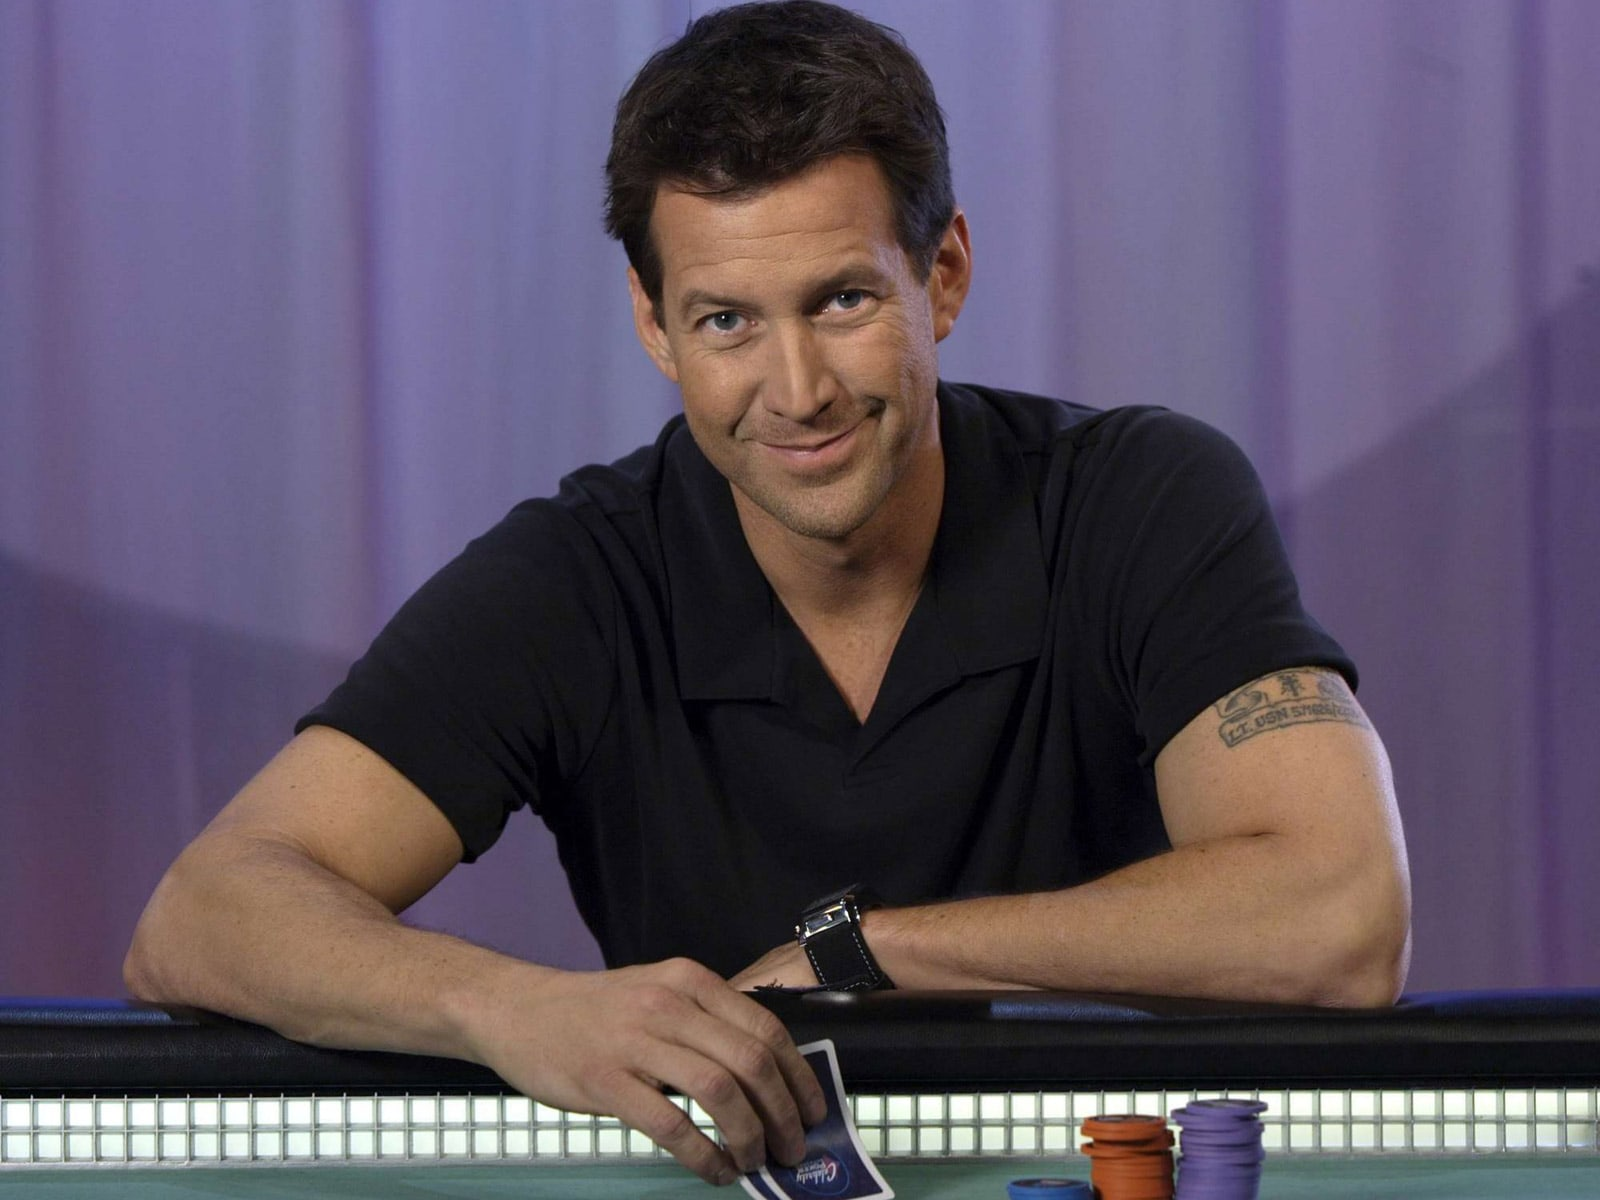 james denton desktop wallpaper 1266